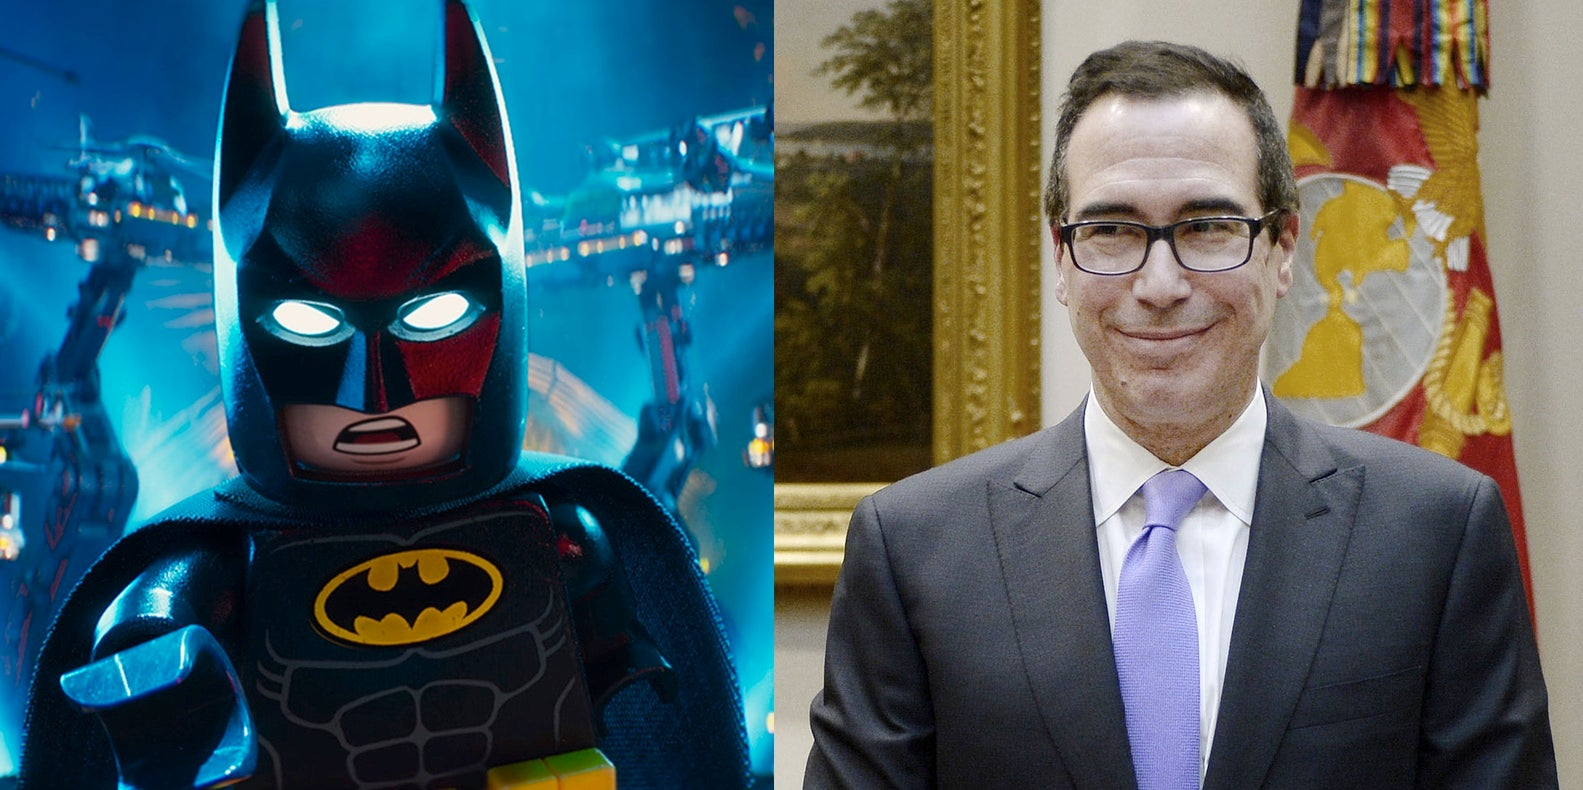 Trump Official'sLEGO BatmanJoke Will Be Investigated Because Democrats Clearly Want To Lose In 2020